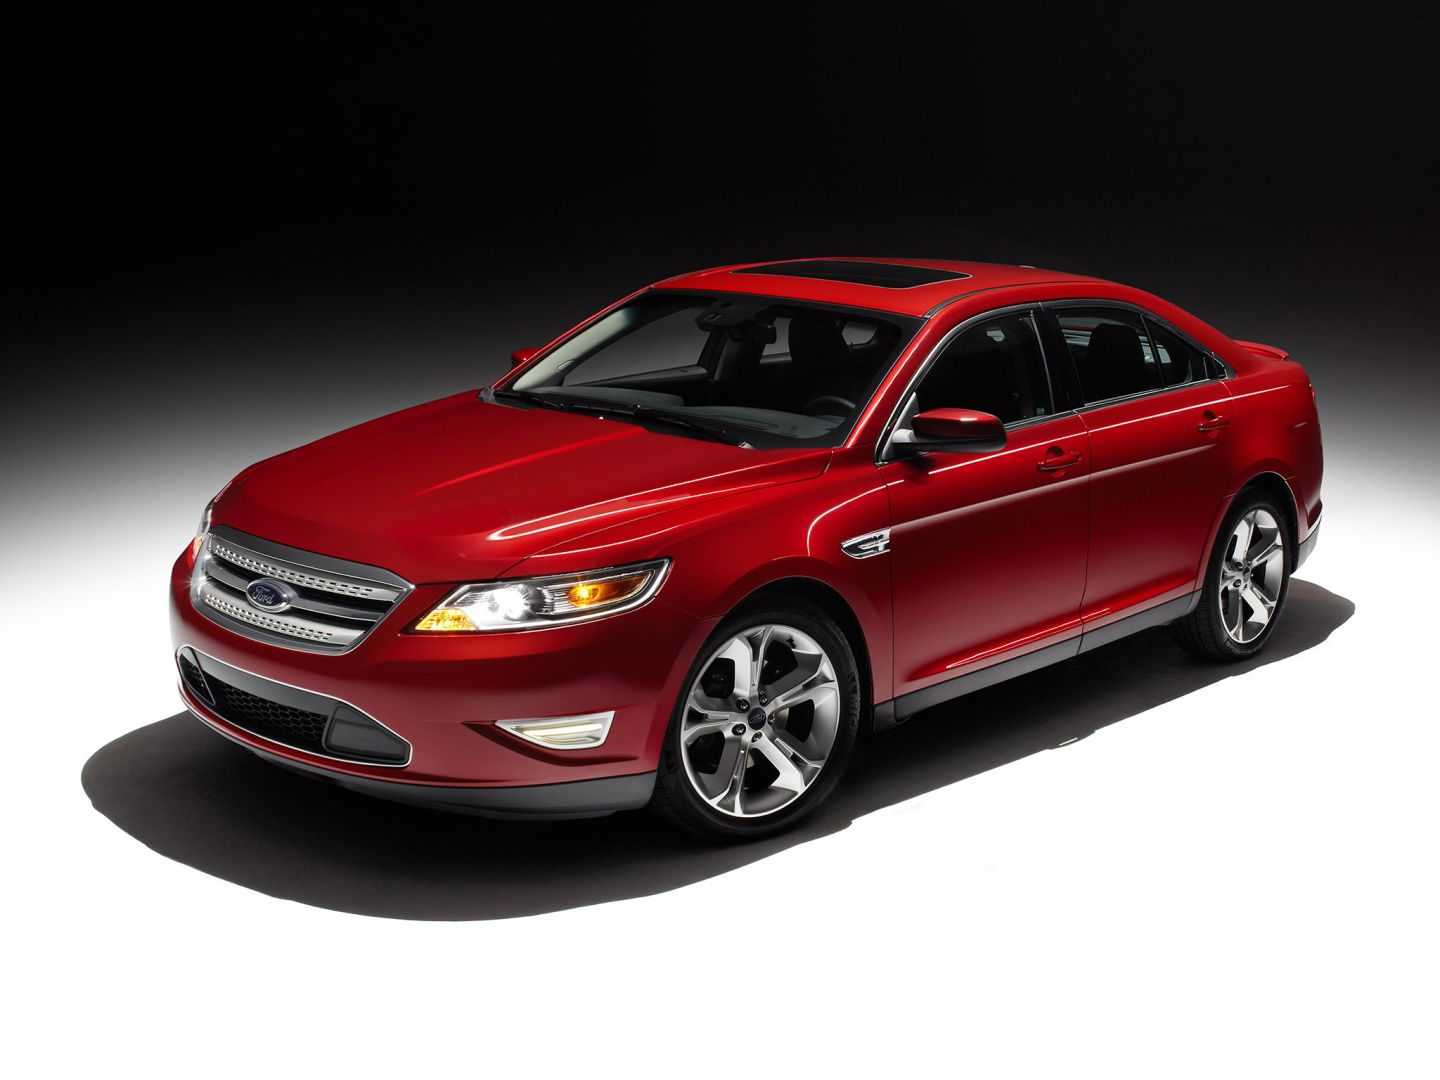 ford taurus sho specs 2009 2010 2011 2012 2013 2014 2015 2016 2017 2018 autoevolution. Black Bedroom Furniture Sets. Home Design Ideas